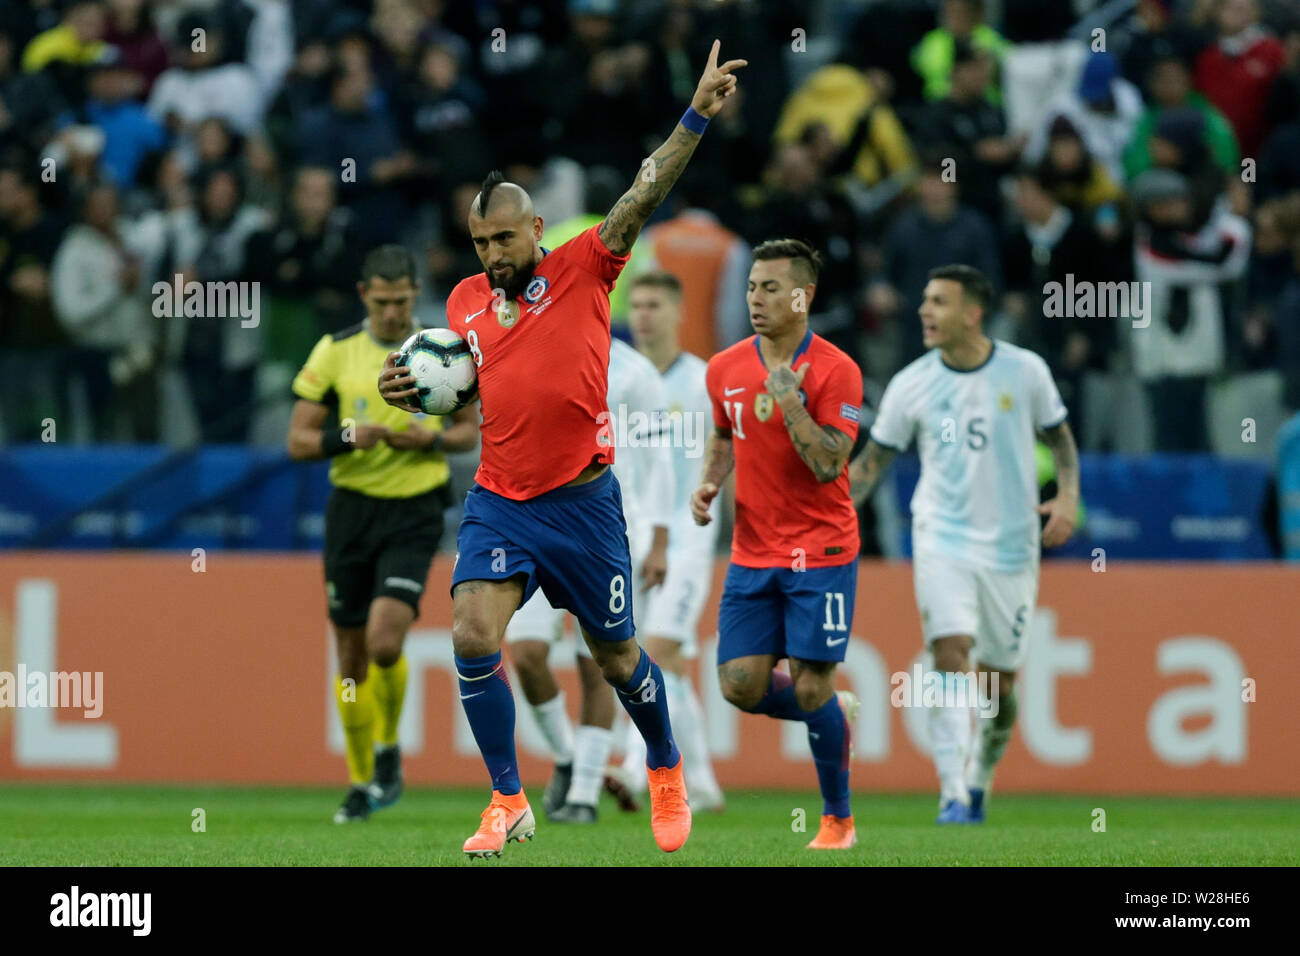 Sao Paulo, Brazil. 6th July, 2019. Chile's Arturo Vidal (front) celebrates after scoring during the 3rd place match of Copa America 2019 between Argentina and Chile in Sao Paulo, Brazil, July 6, 2019. Credit: Francisco Canedo/Xinhua/Alamy Live News - Stock Image